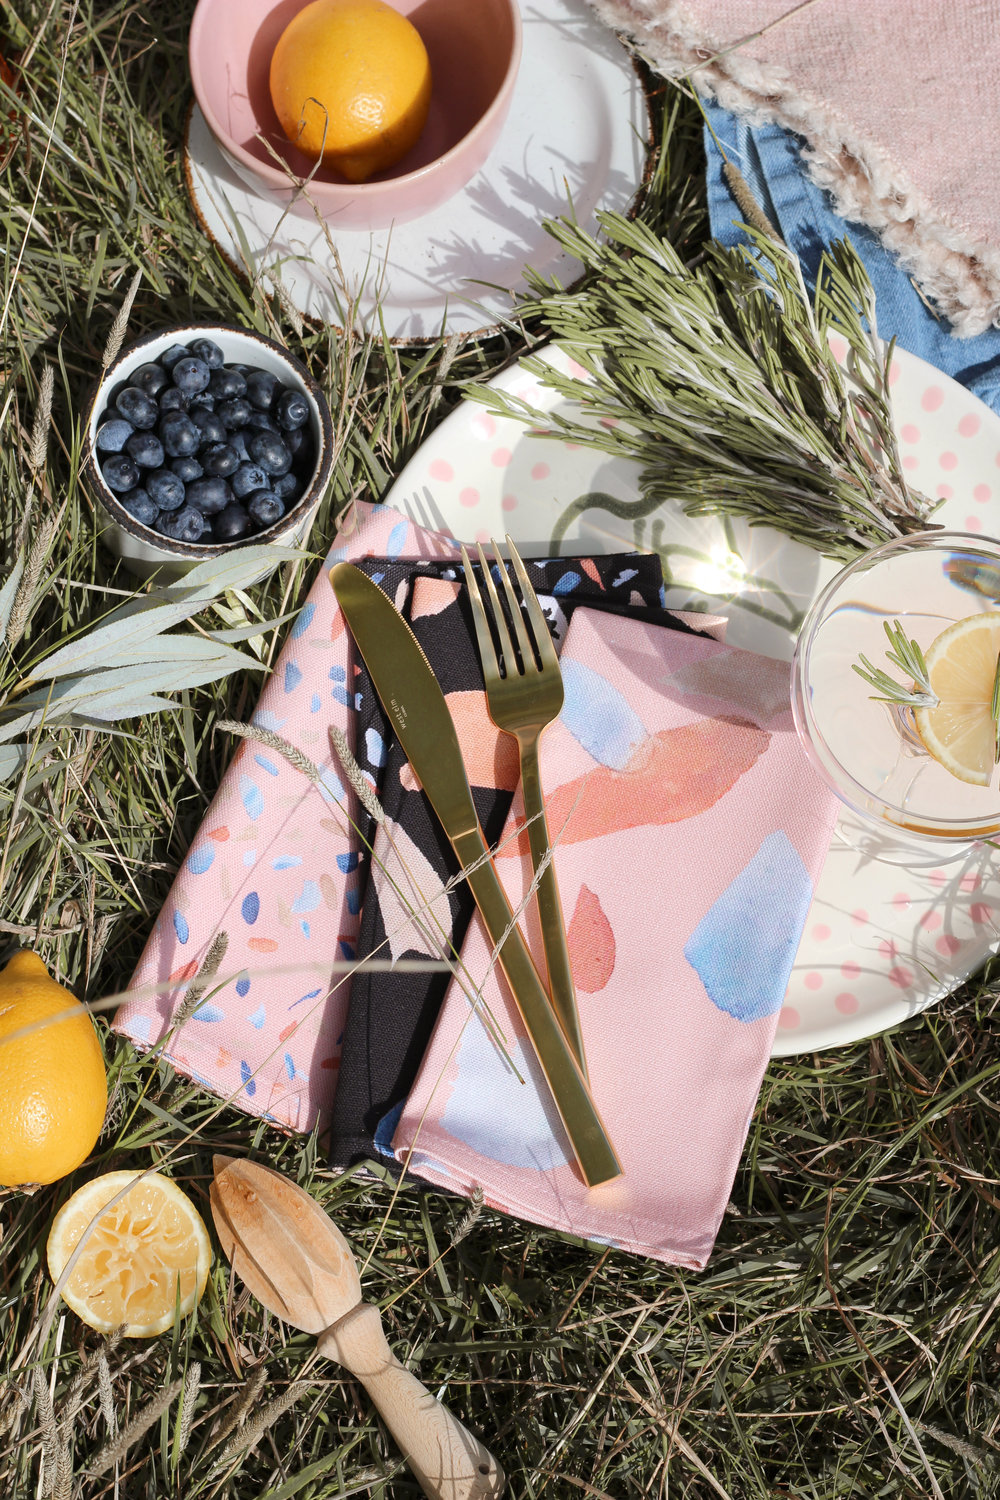 Summer picnic accessories, pink and black picnic style by British homeware brand House Anna